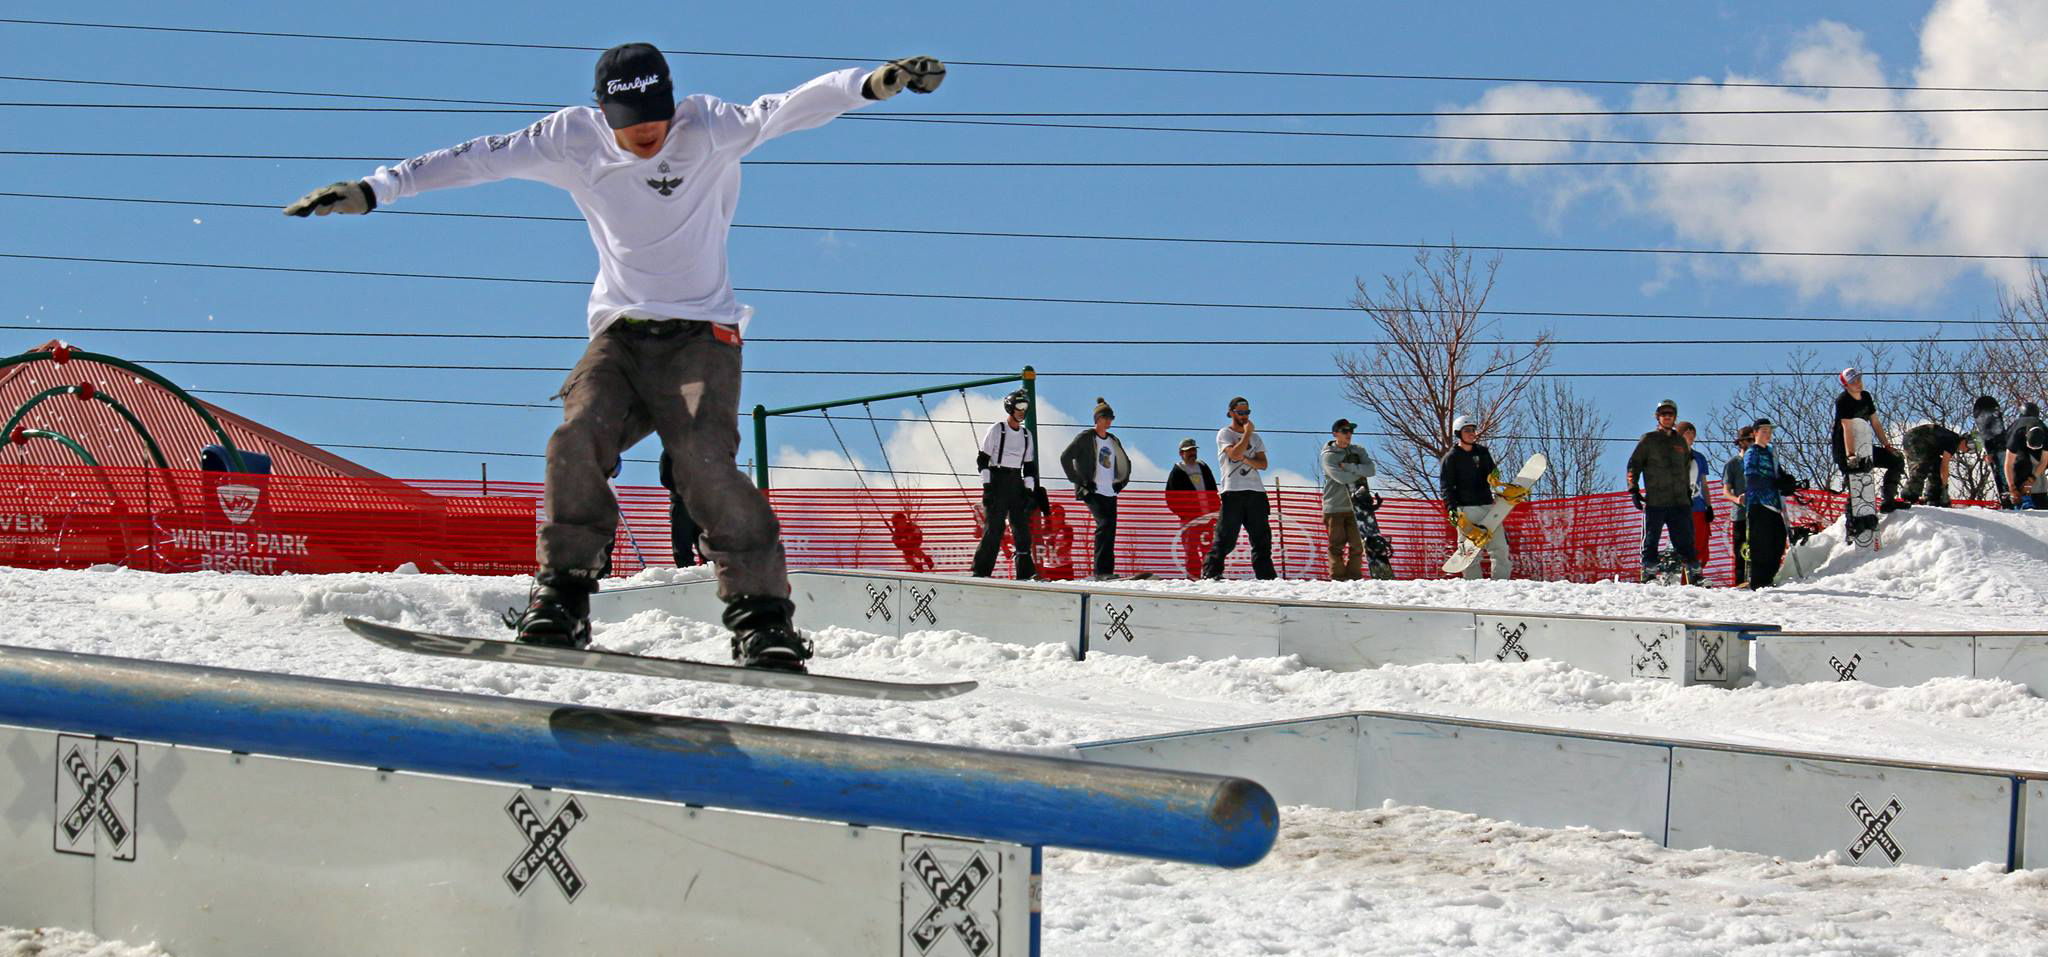 snowboarder riding at Ruby Hill Rail Yard